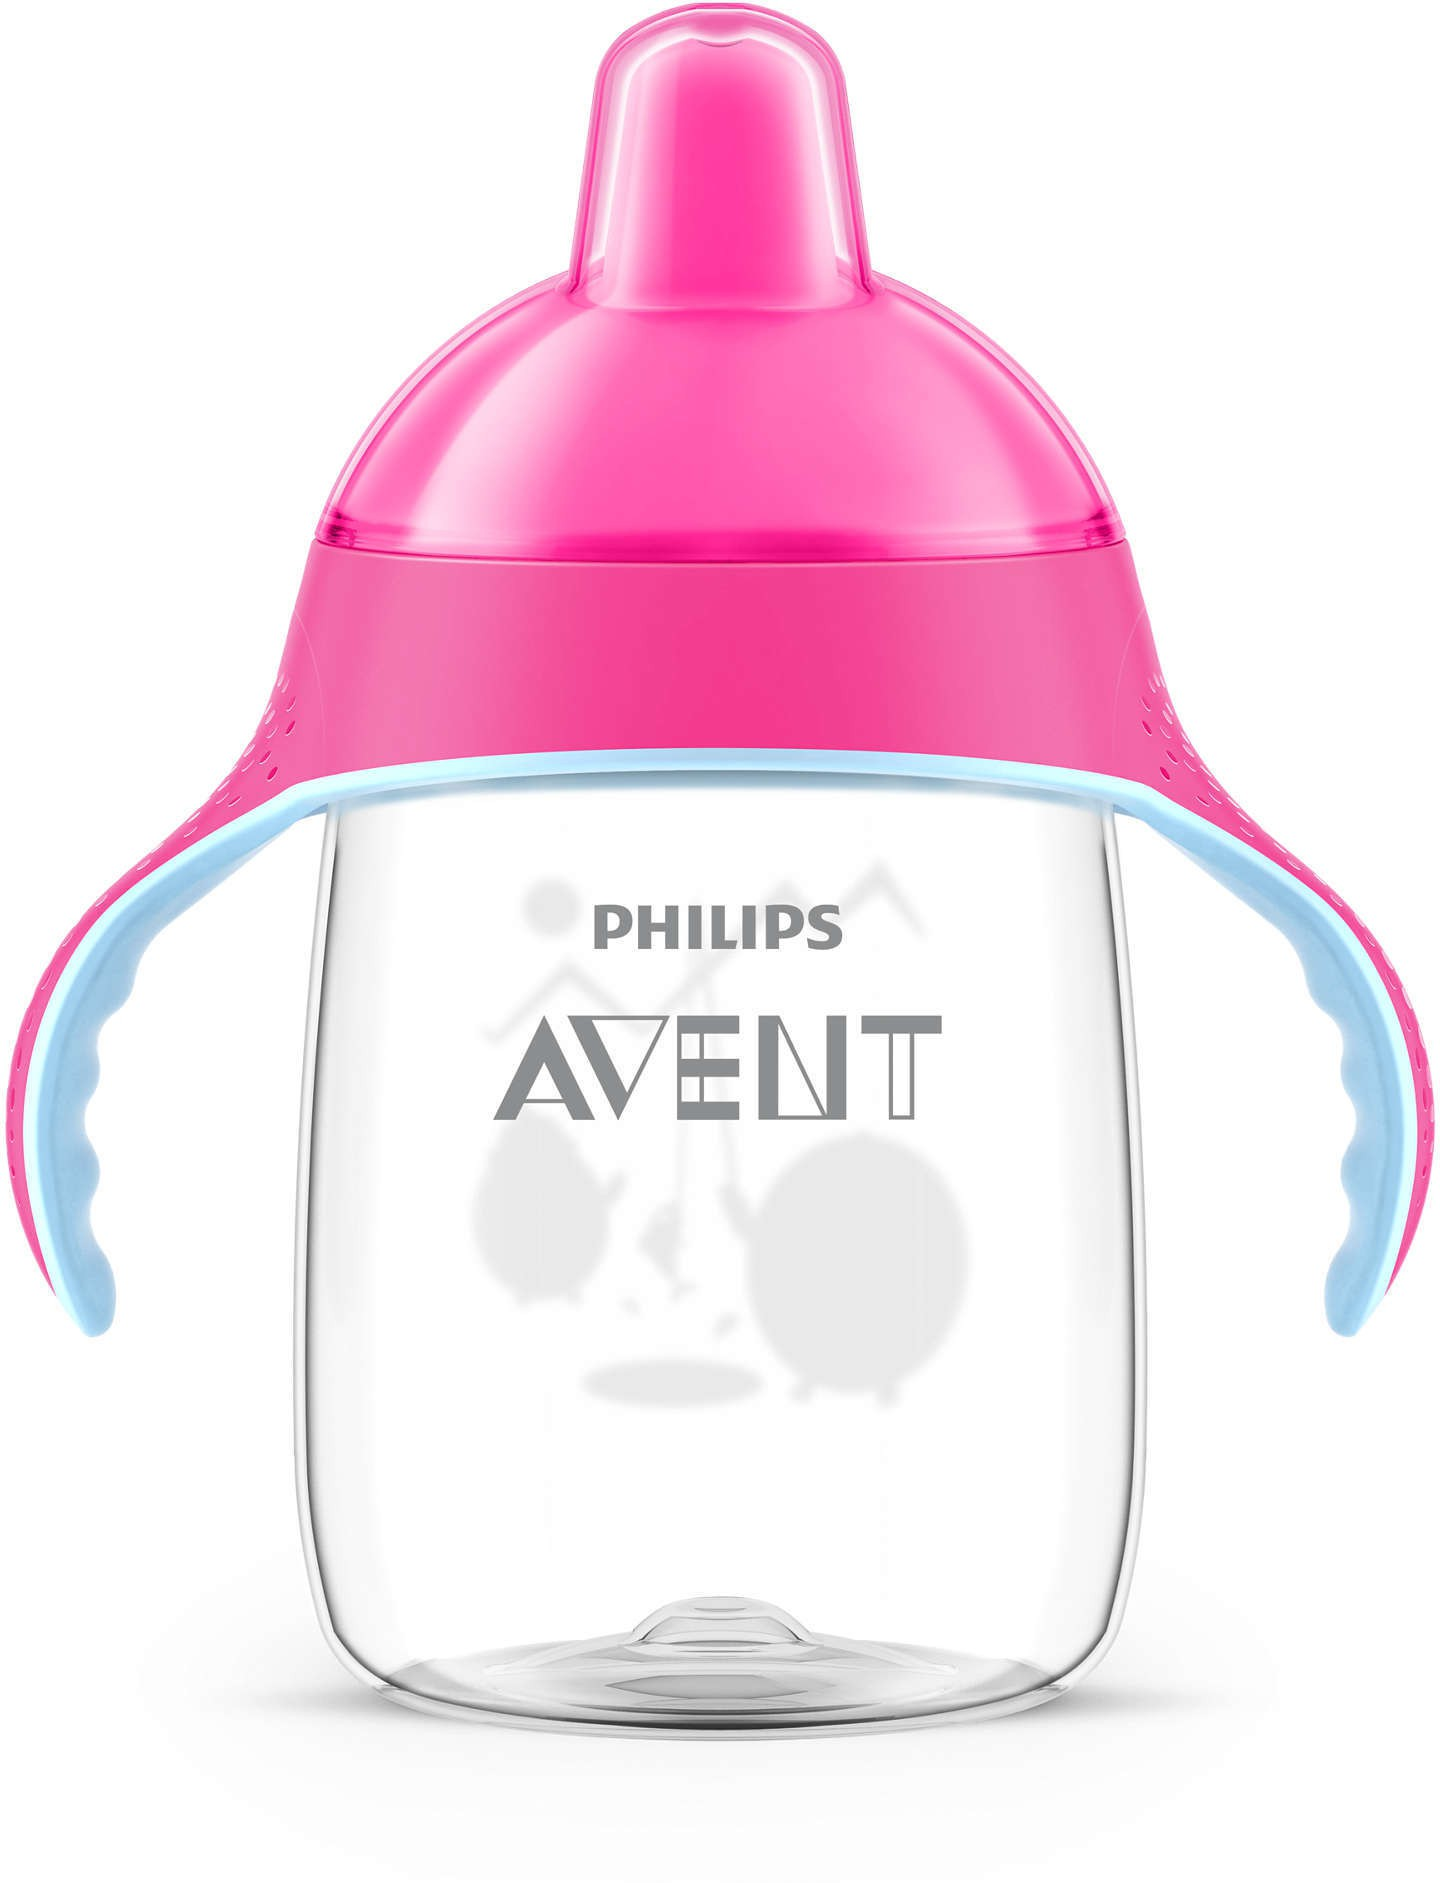 Deals - Delhi - Philips Avent <br> Feeding Bottles, Spout Cups...<br> Category - baby_care<br> Business - Flipkart.com